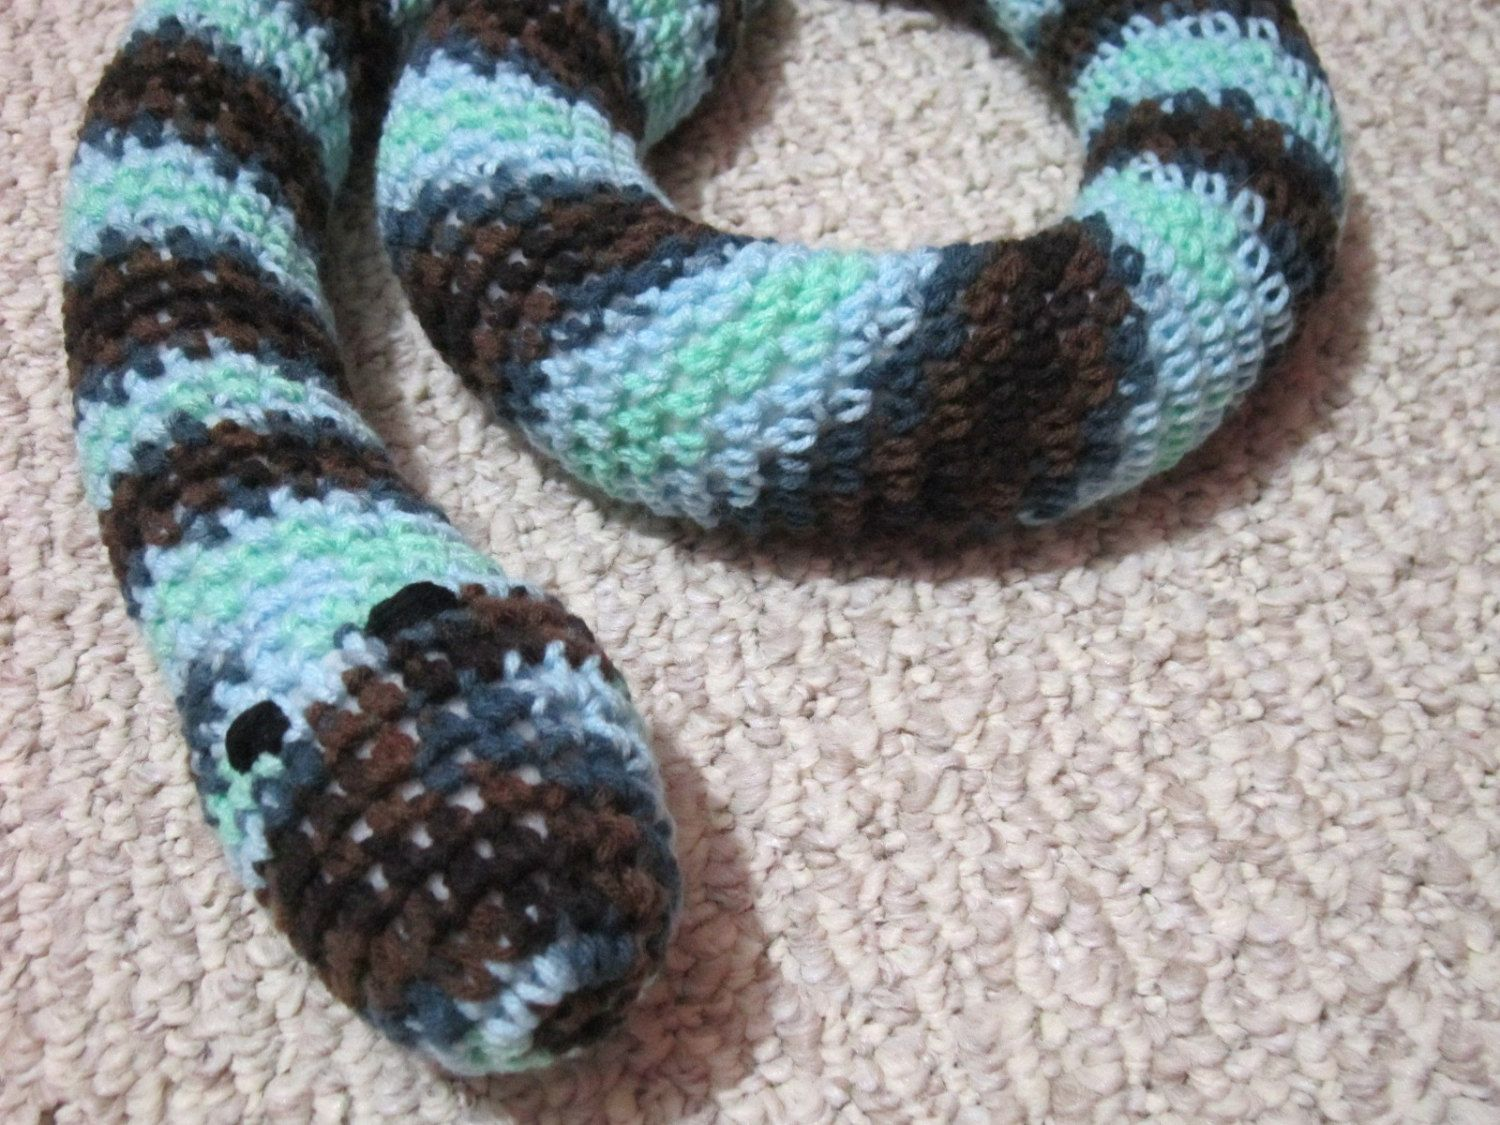 Crochet Snake Toy Door Draft Stopper Blue, Green, Brown and Black ...